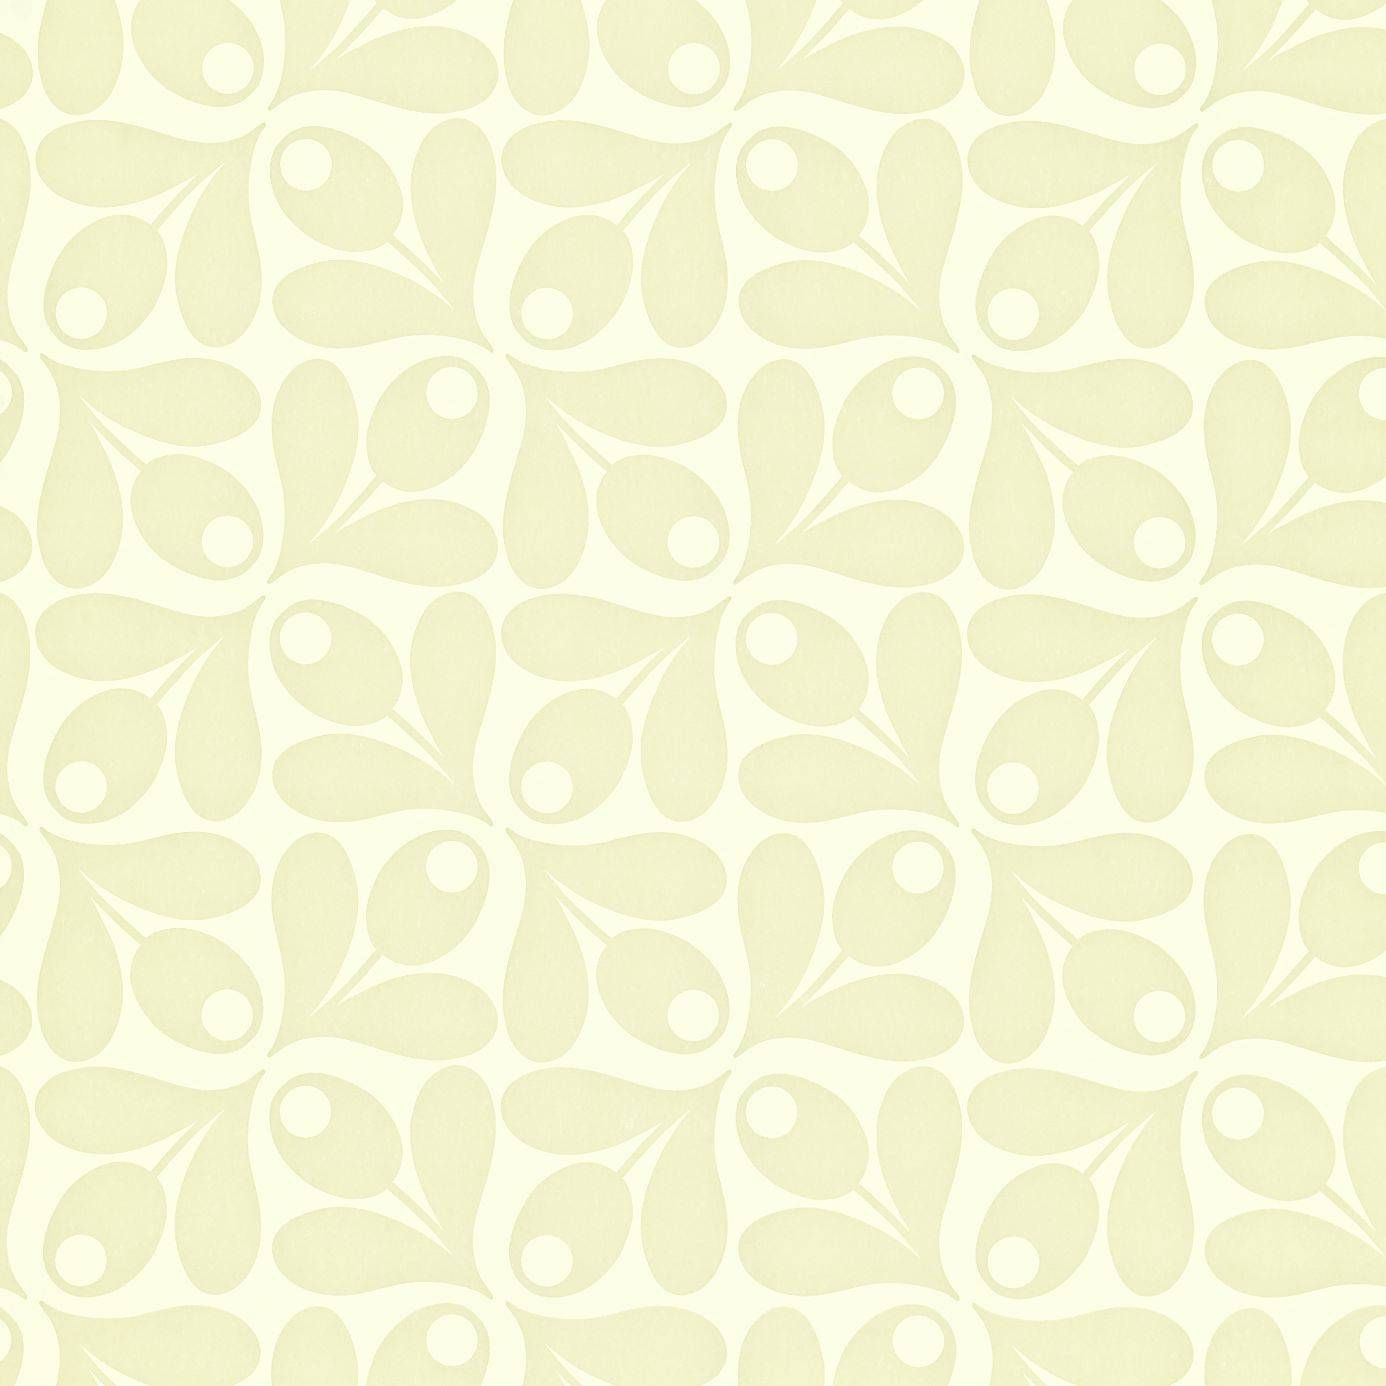 small acorn cup wallpaper sandstone 110416 harlequin orla kiely wallpapers collection. Black Bedroom Furniture Sets. Home Design Ideas